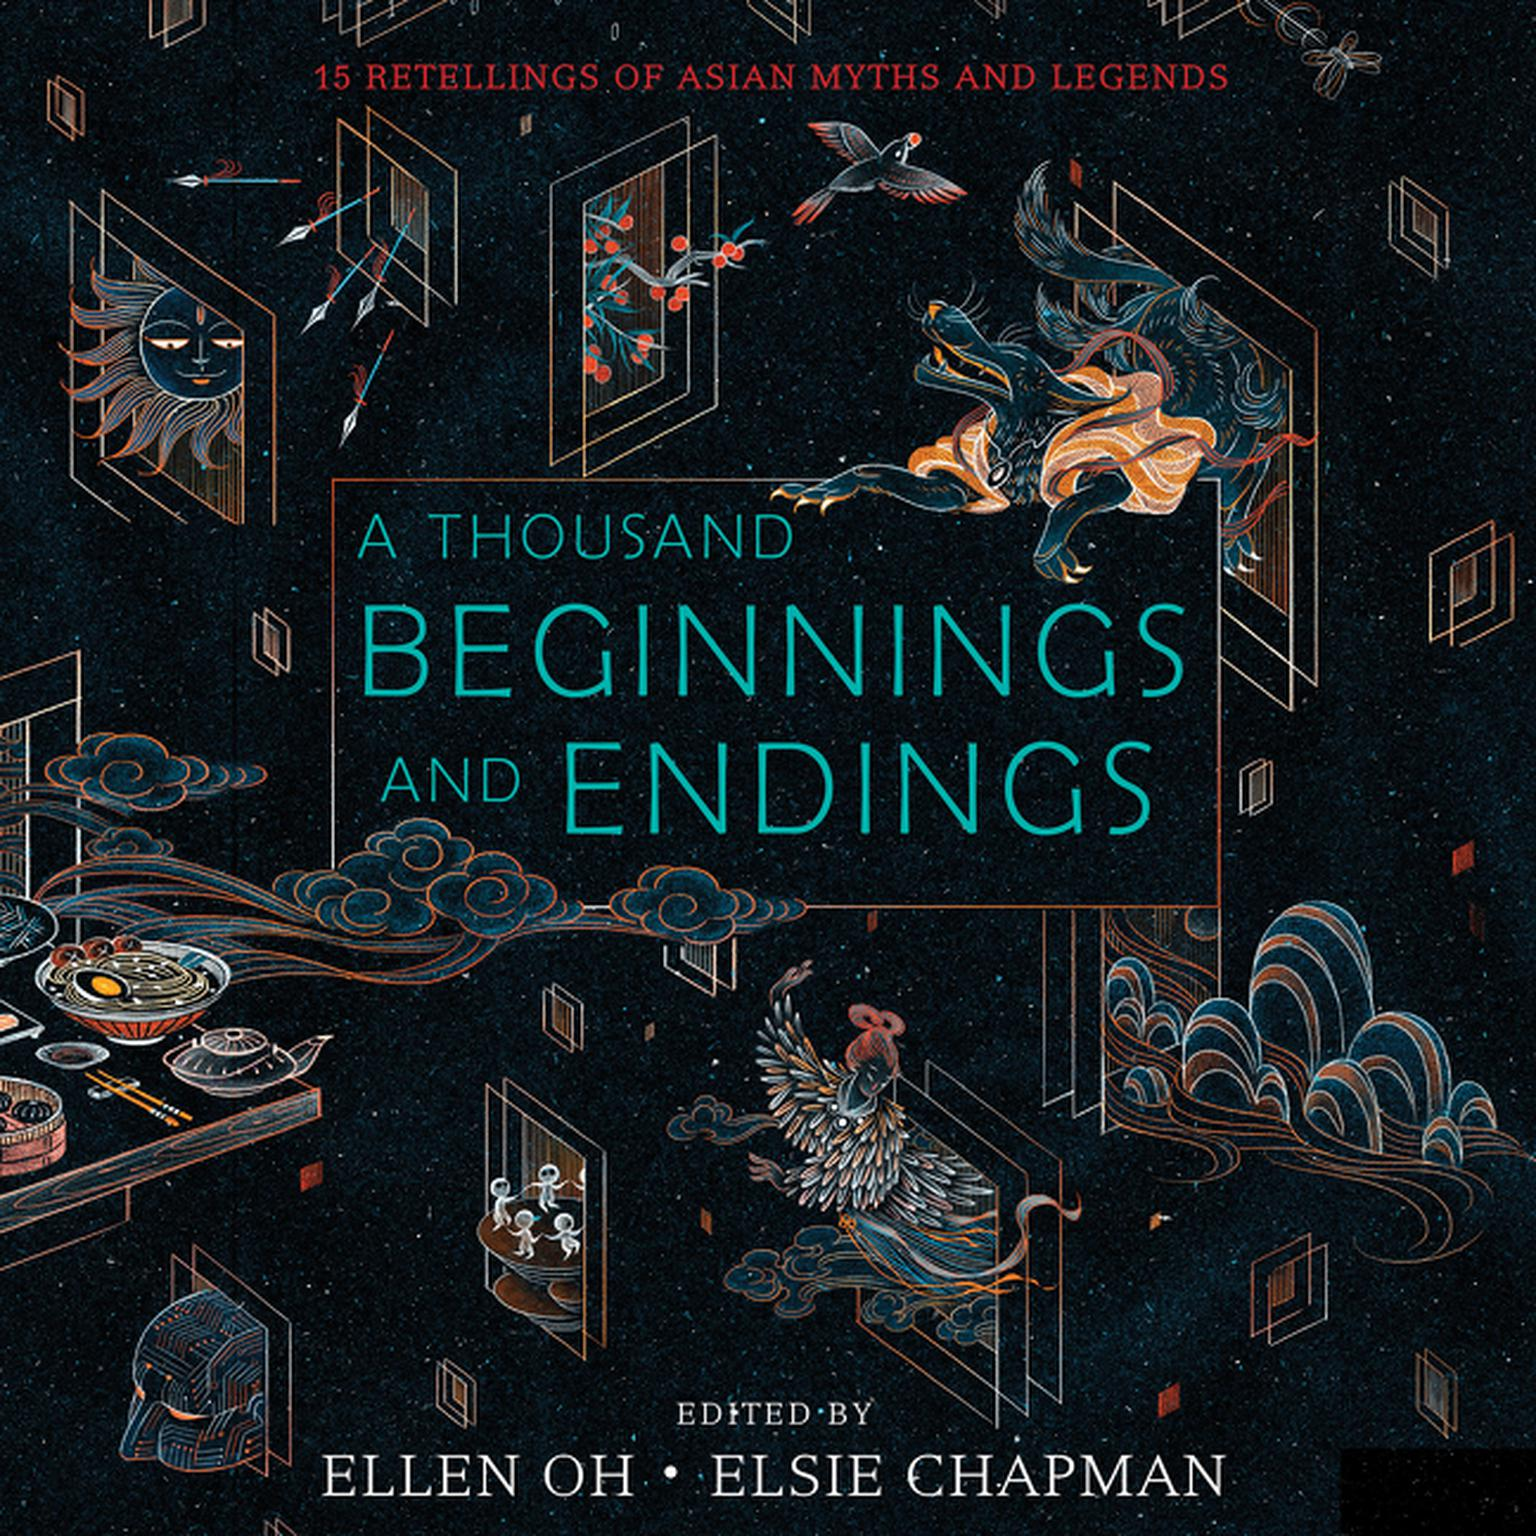 A Thousand Beginnings and Endings: 15 Retellings of Asian Myths and Legends Audiobook, by Ellen Oh